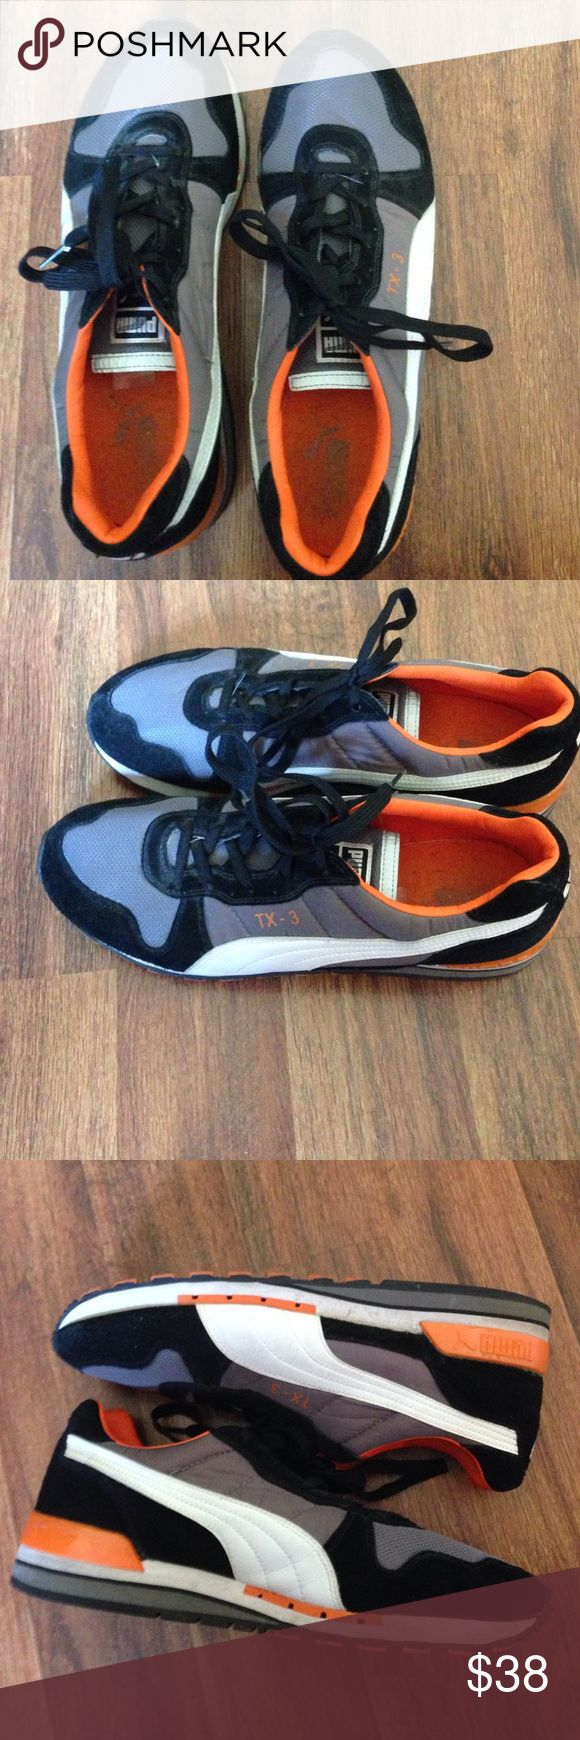 Men's Puma TX-3 sports shoes Men's Puma shoes - gray, orange, white, and black color. TX-3 model. Worn a few times. Overall good condition. Puma Shoes Sneakers